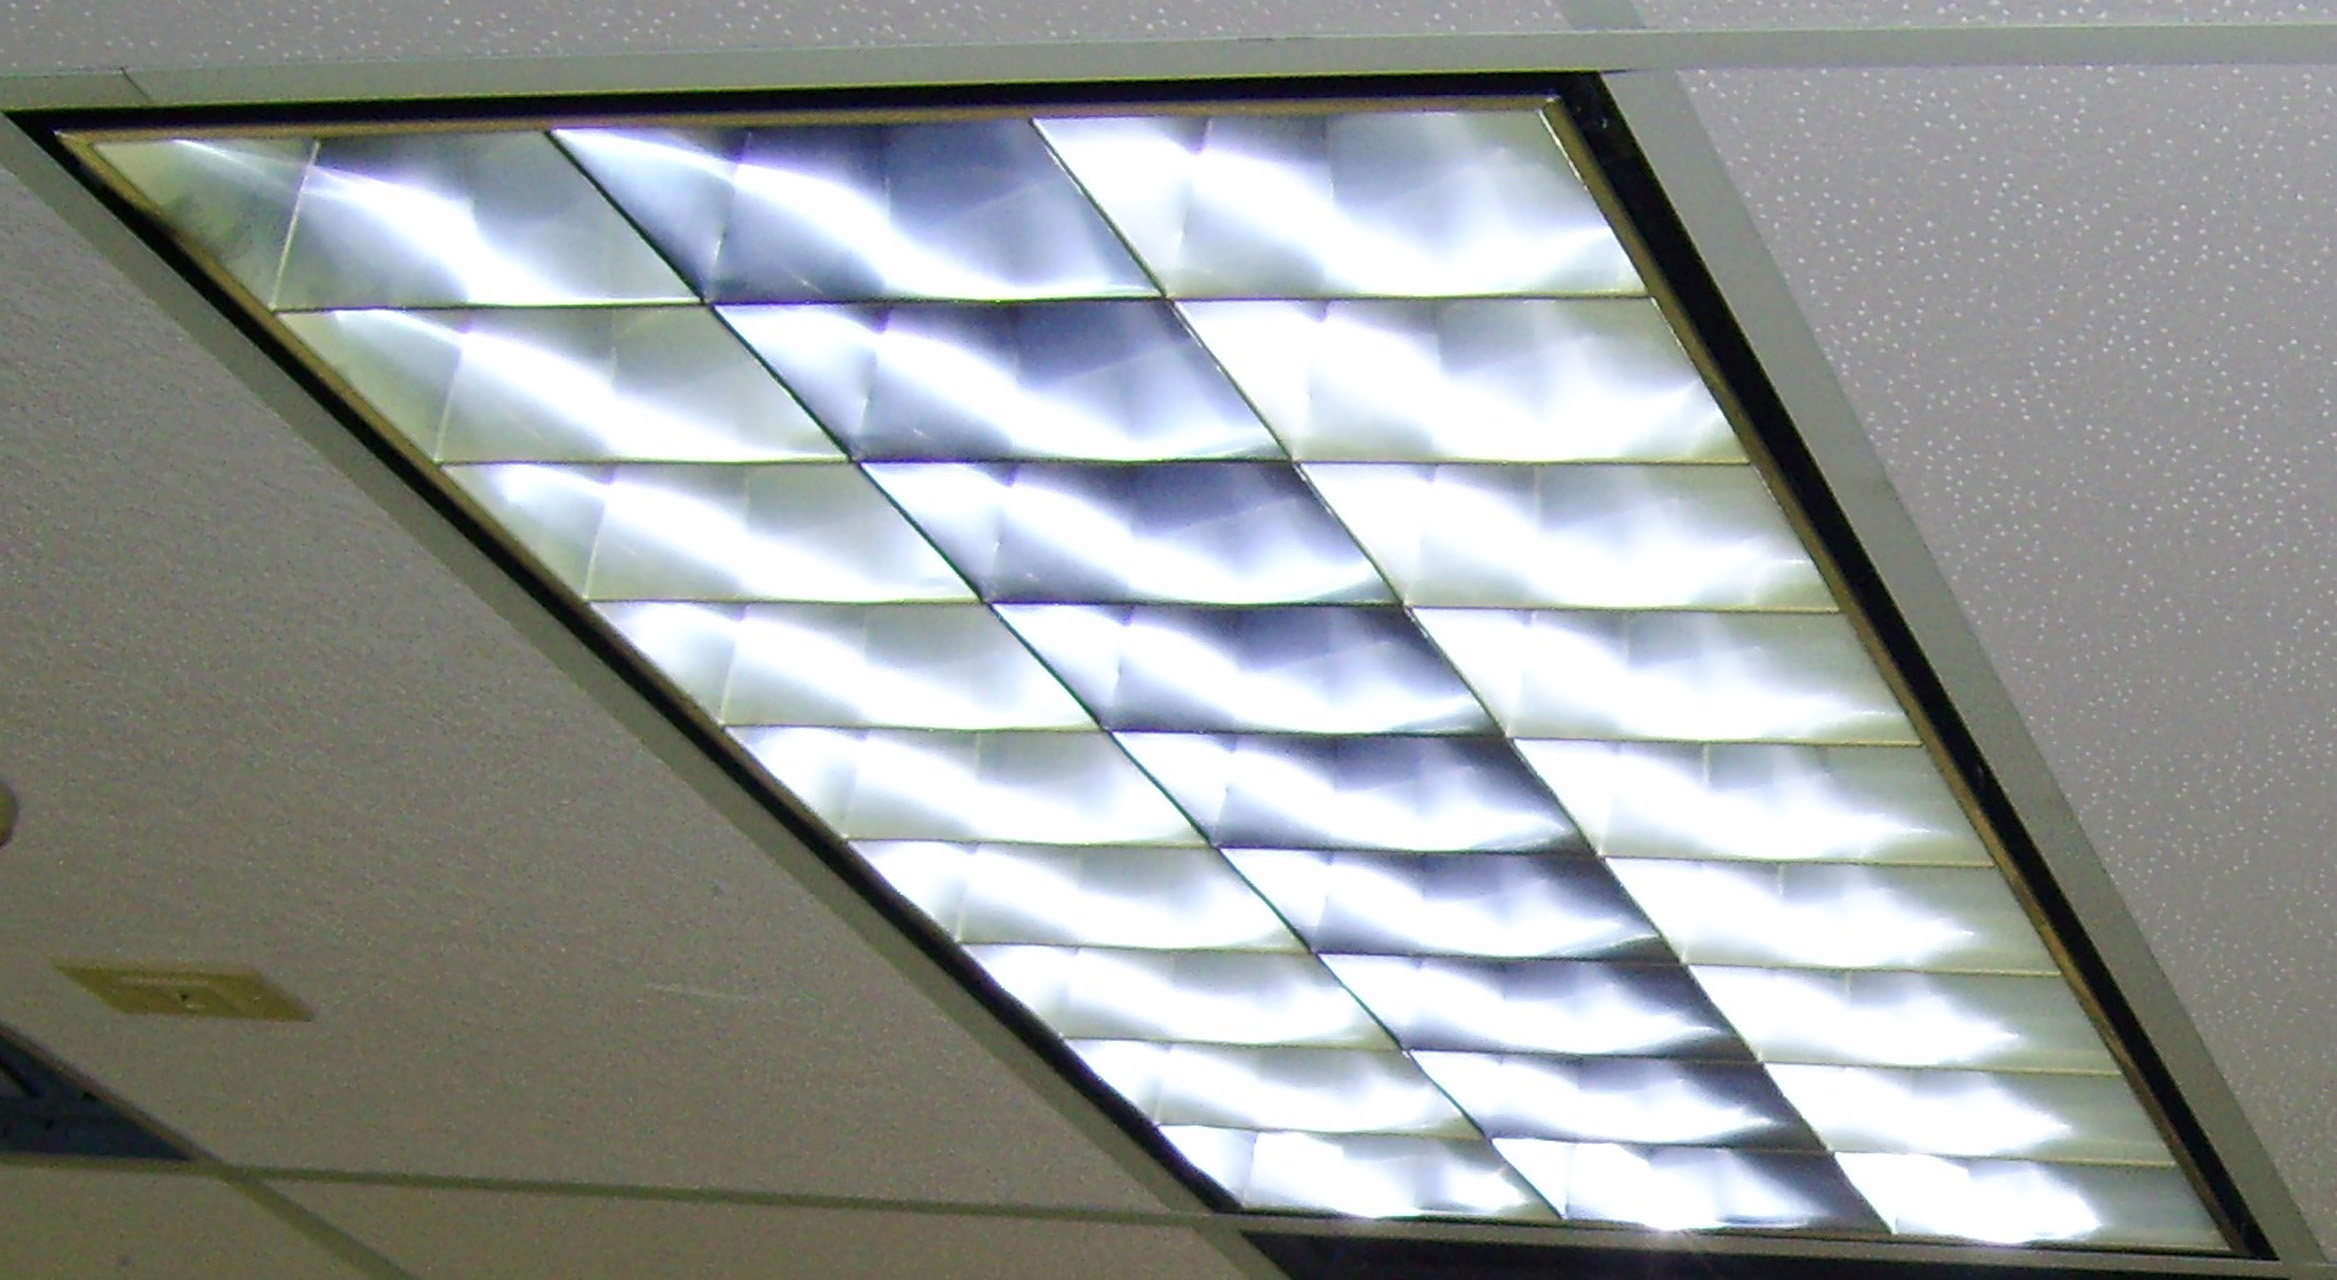 Let Us Design An Efficient Lighting Plan To Give You The Most Light For  Your Energy Saving Dollar. Fluorescent Fixtures Come In A Variety Of Styles  For ...